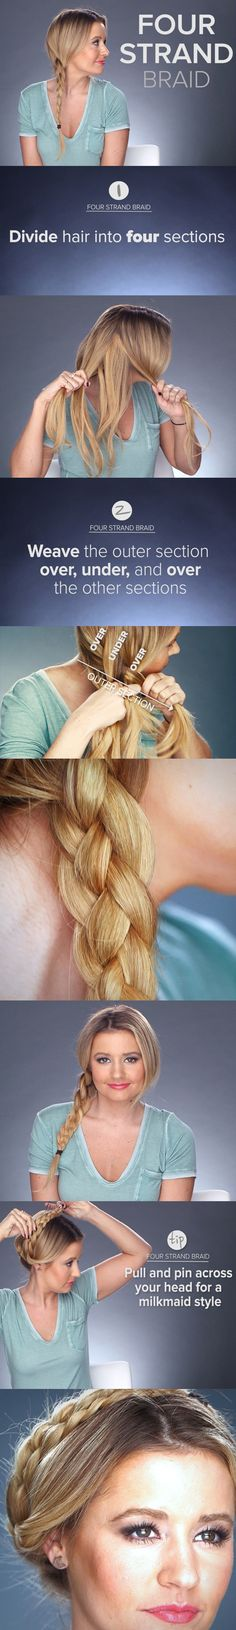 Four-strand braids aren't as hard as they look! Watch this video tutorial to DIY your own gorgeous plait.